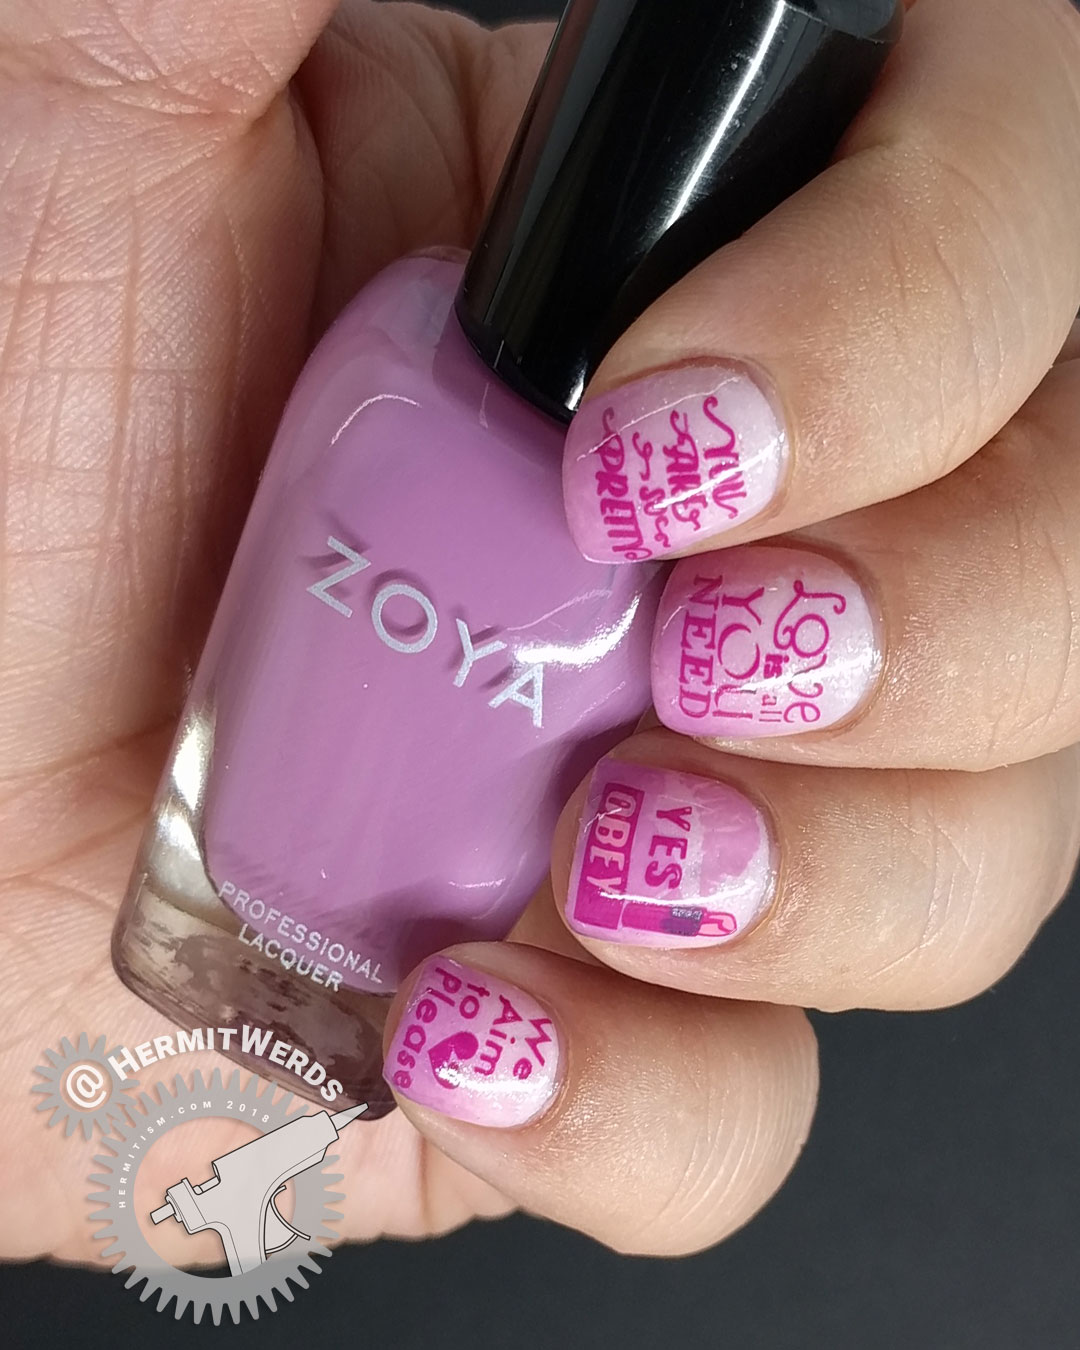 Women's Equality Day - Hermit Werds - pink nail art with stamped messages women often hear that hold them back